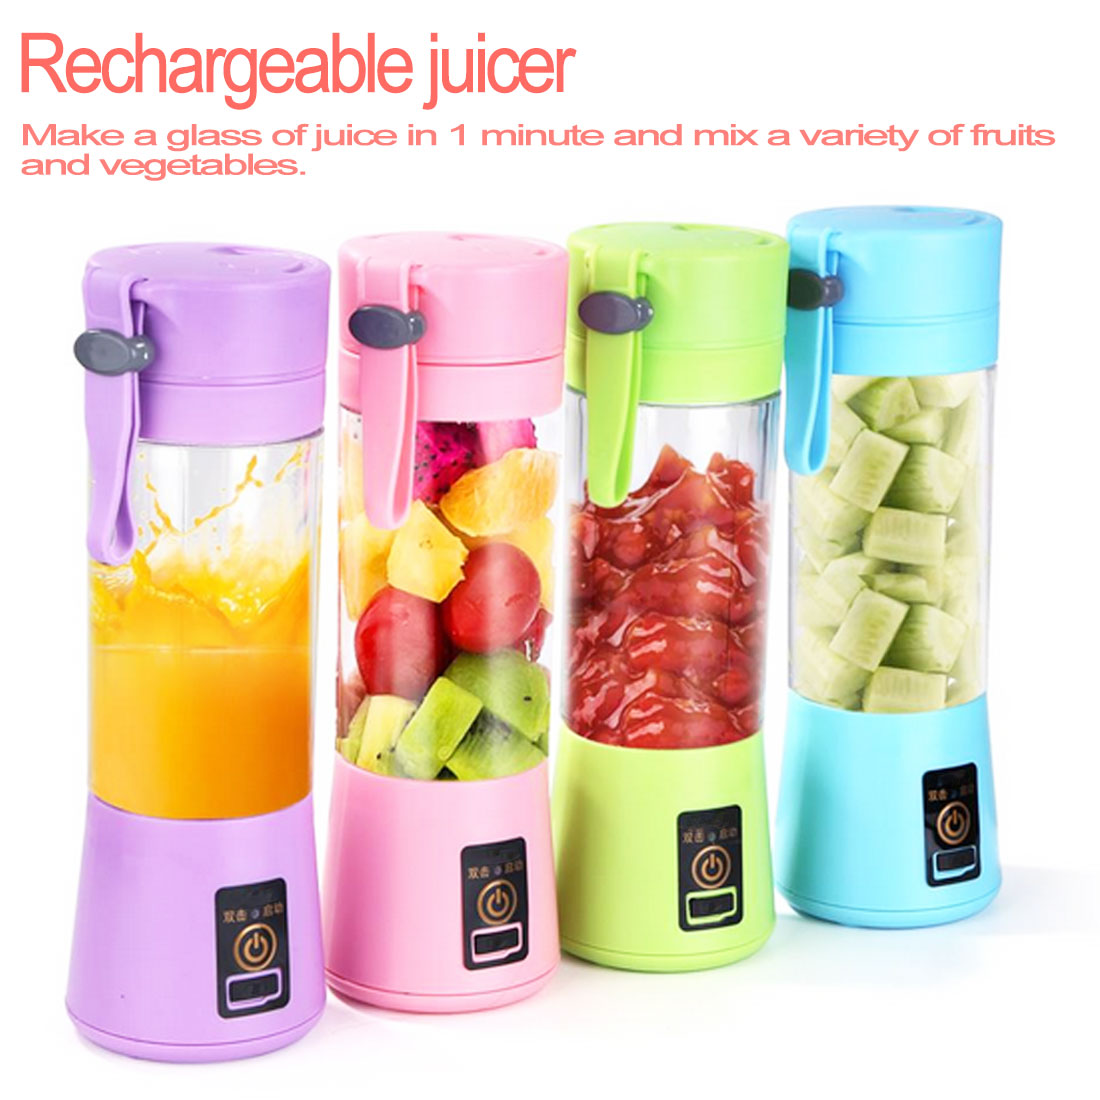 380ML 4 Blades Squeezer USB Rechargeable Juicer Bottle Blender Fruit Lemon Top Smoothie Vegetables Milkshake Bottle|Squeezers & Reamers| |  - title=